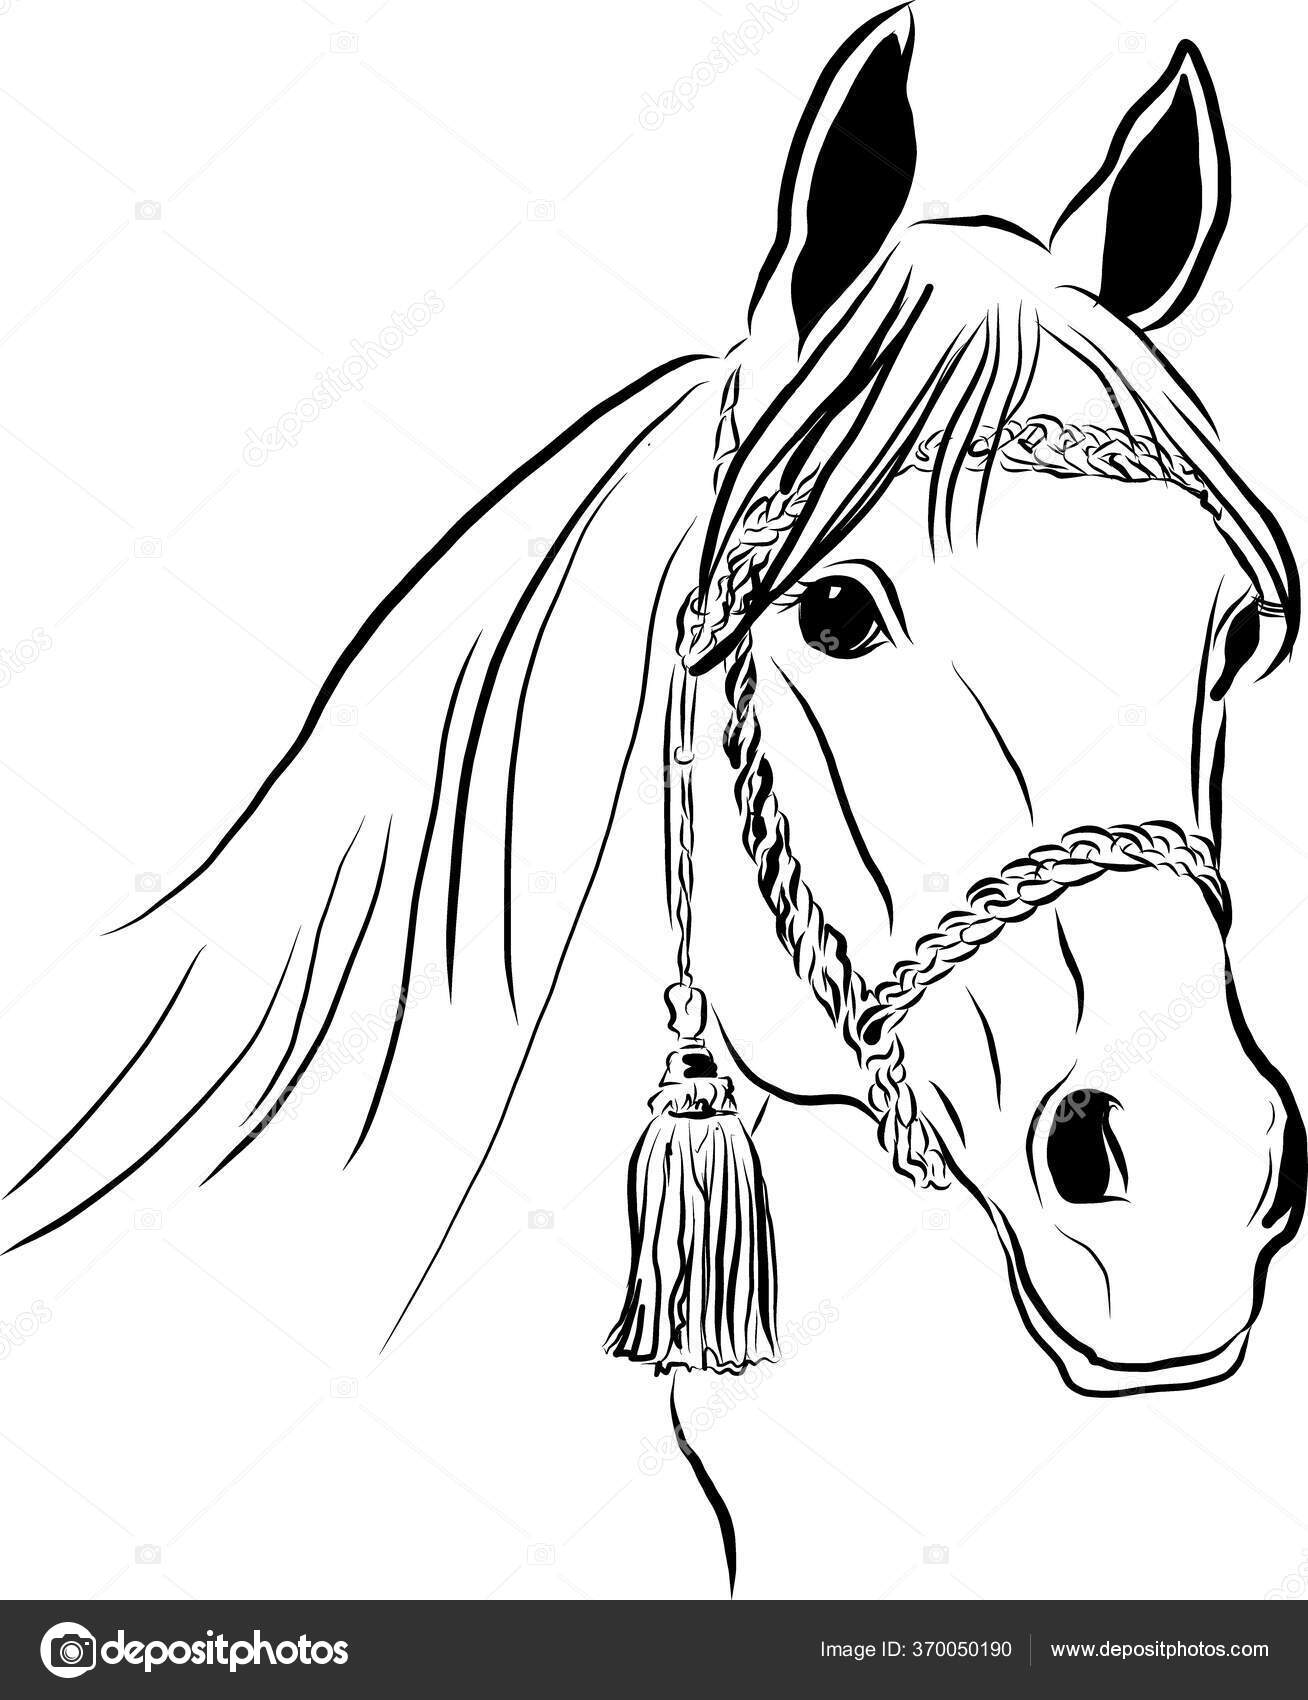 ᐈ Horse Face Drawing Stock Drawings Royalty Free Horse Face Front Animated Download On Depositphotos